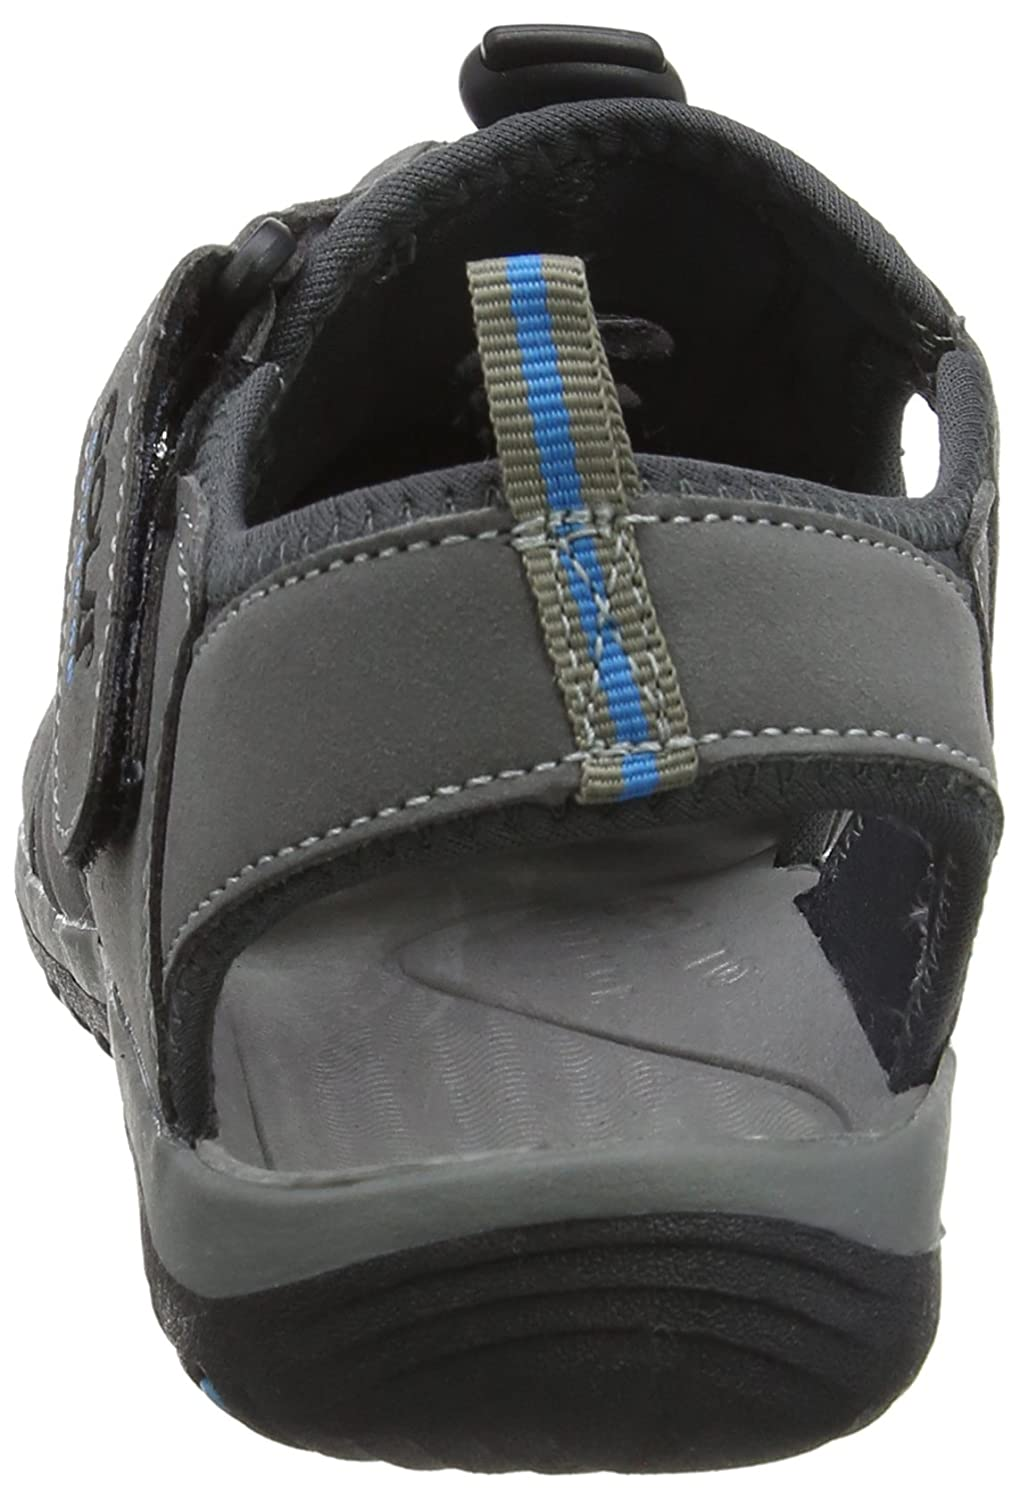 Sandalias Atl/éticas Gris 43 EU Hombre Grey//black//blue Gola Shingle 3